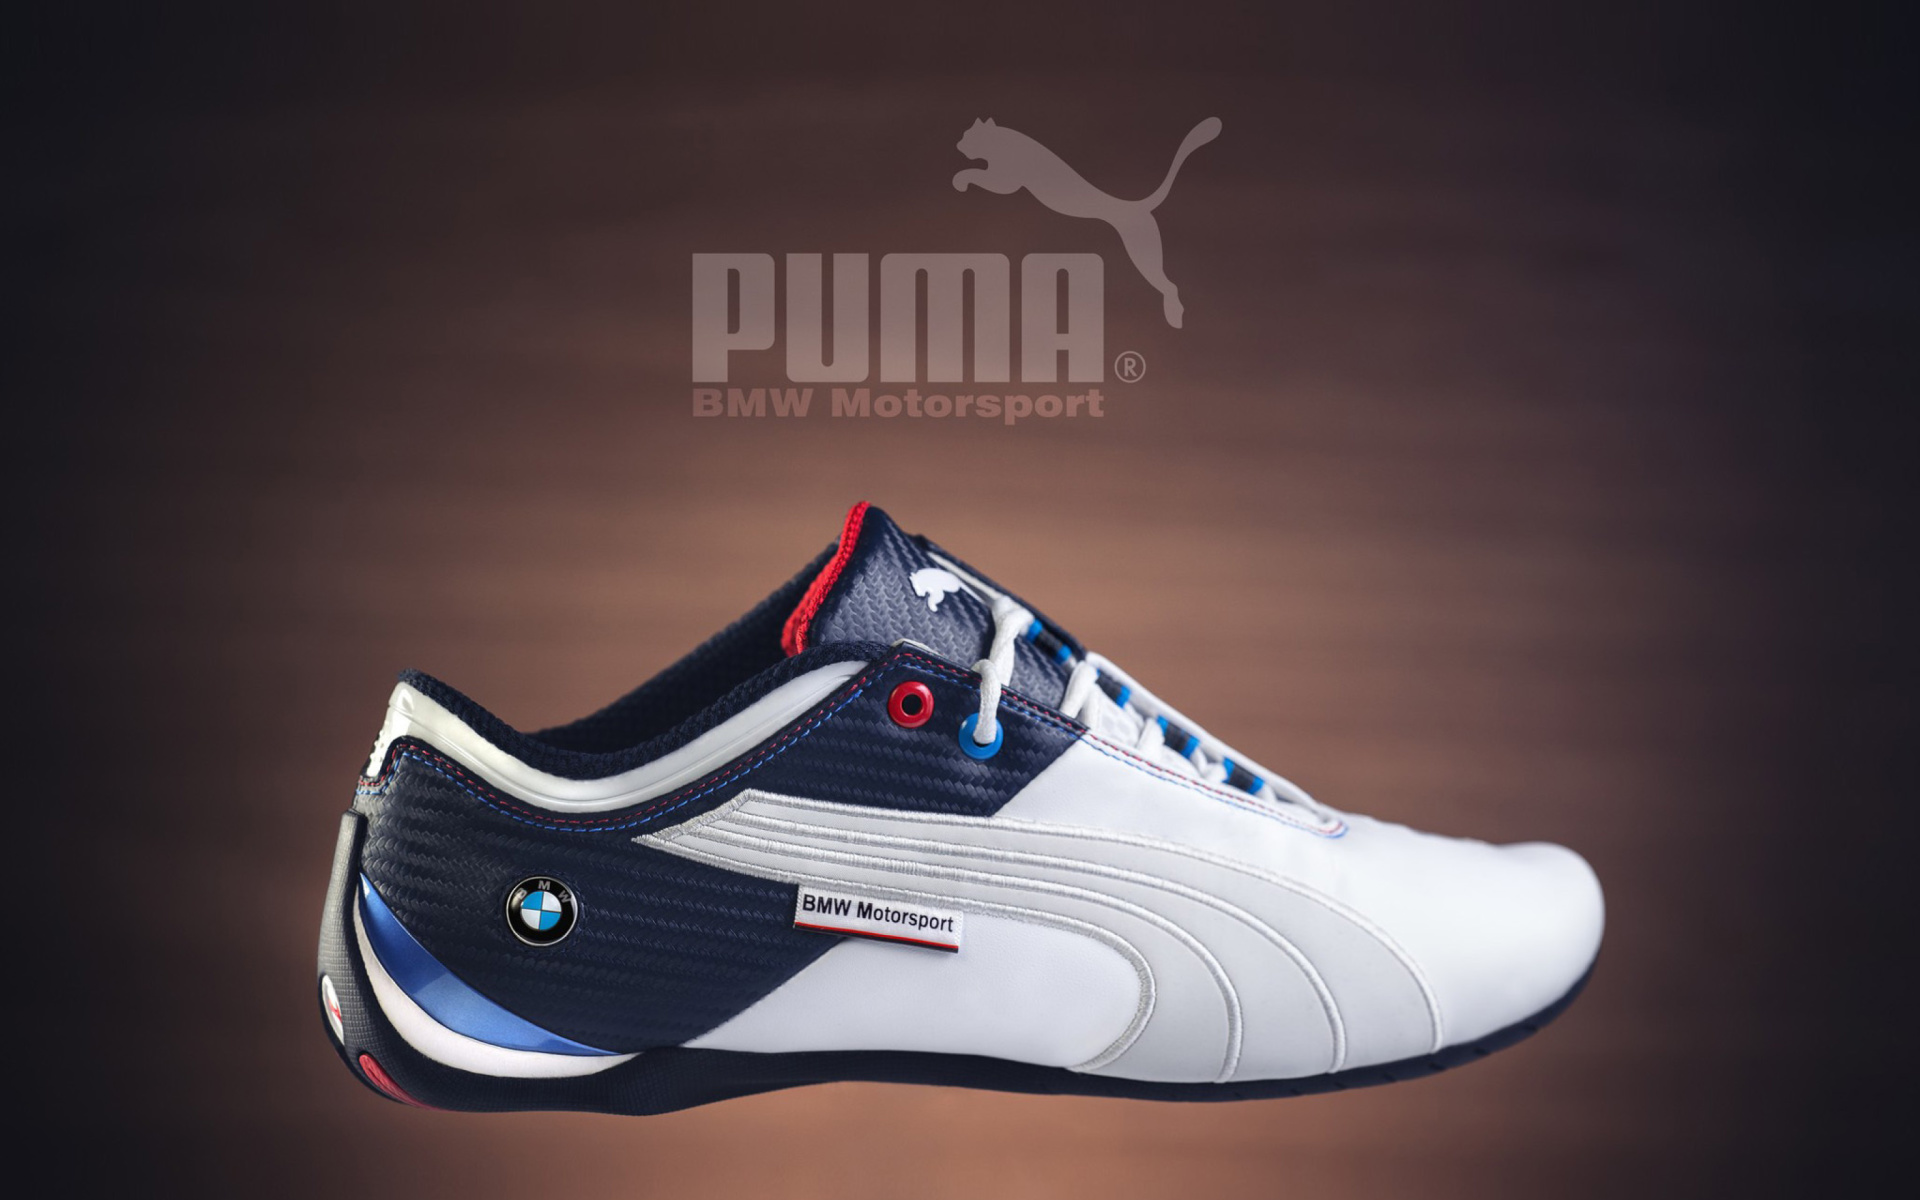 Download Puma Shoes Wallpaper Gallery